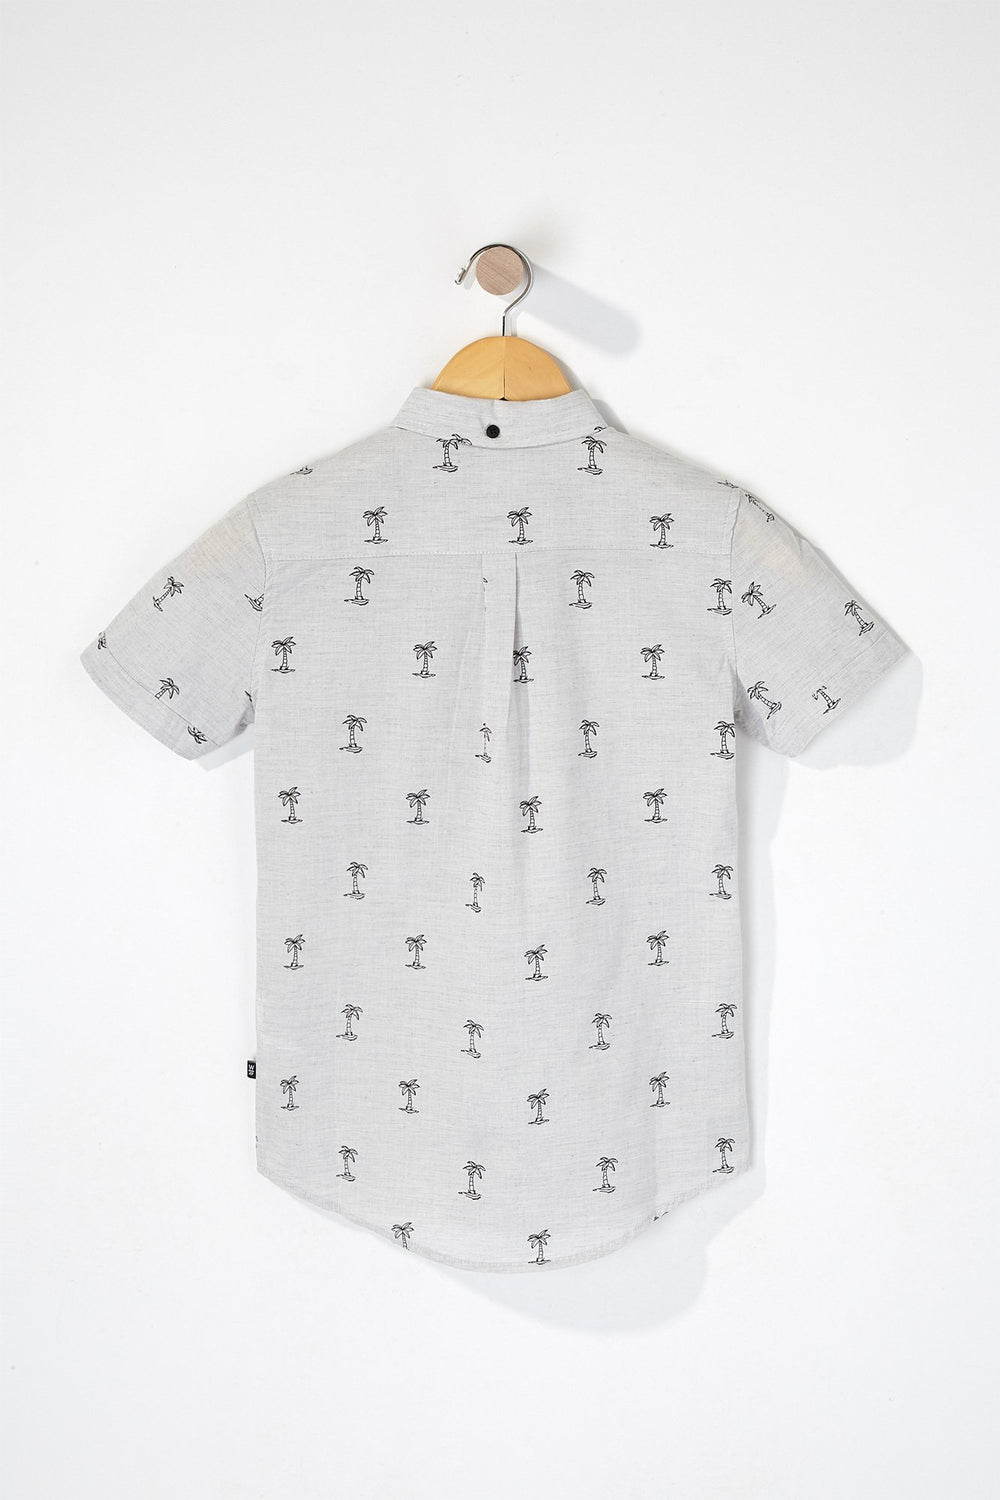 West49 Boys Palm Tree Button-Up Shirt Heather Grey